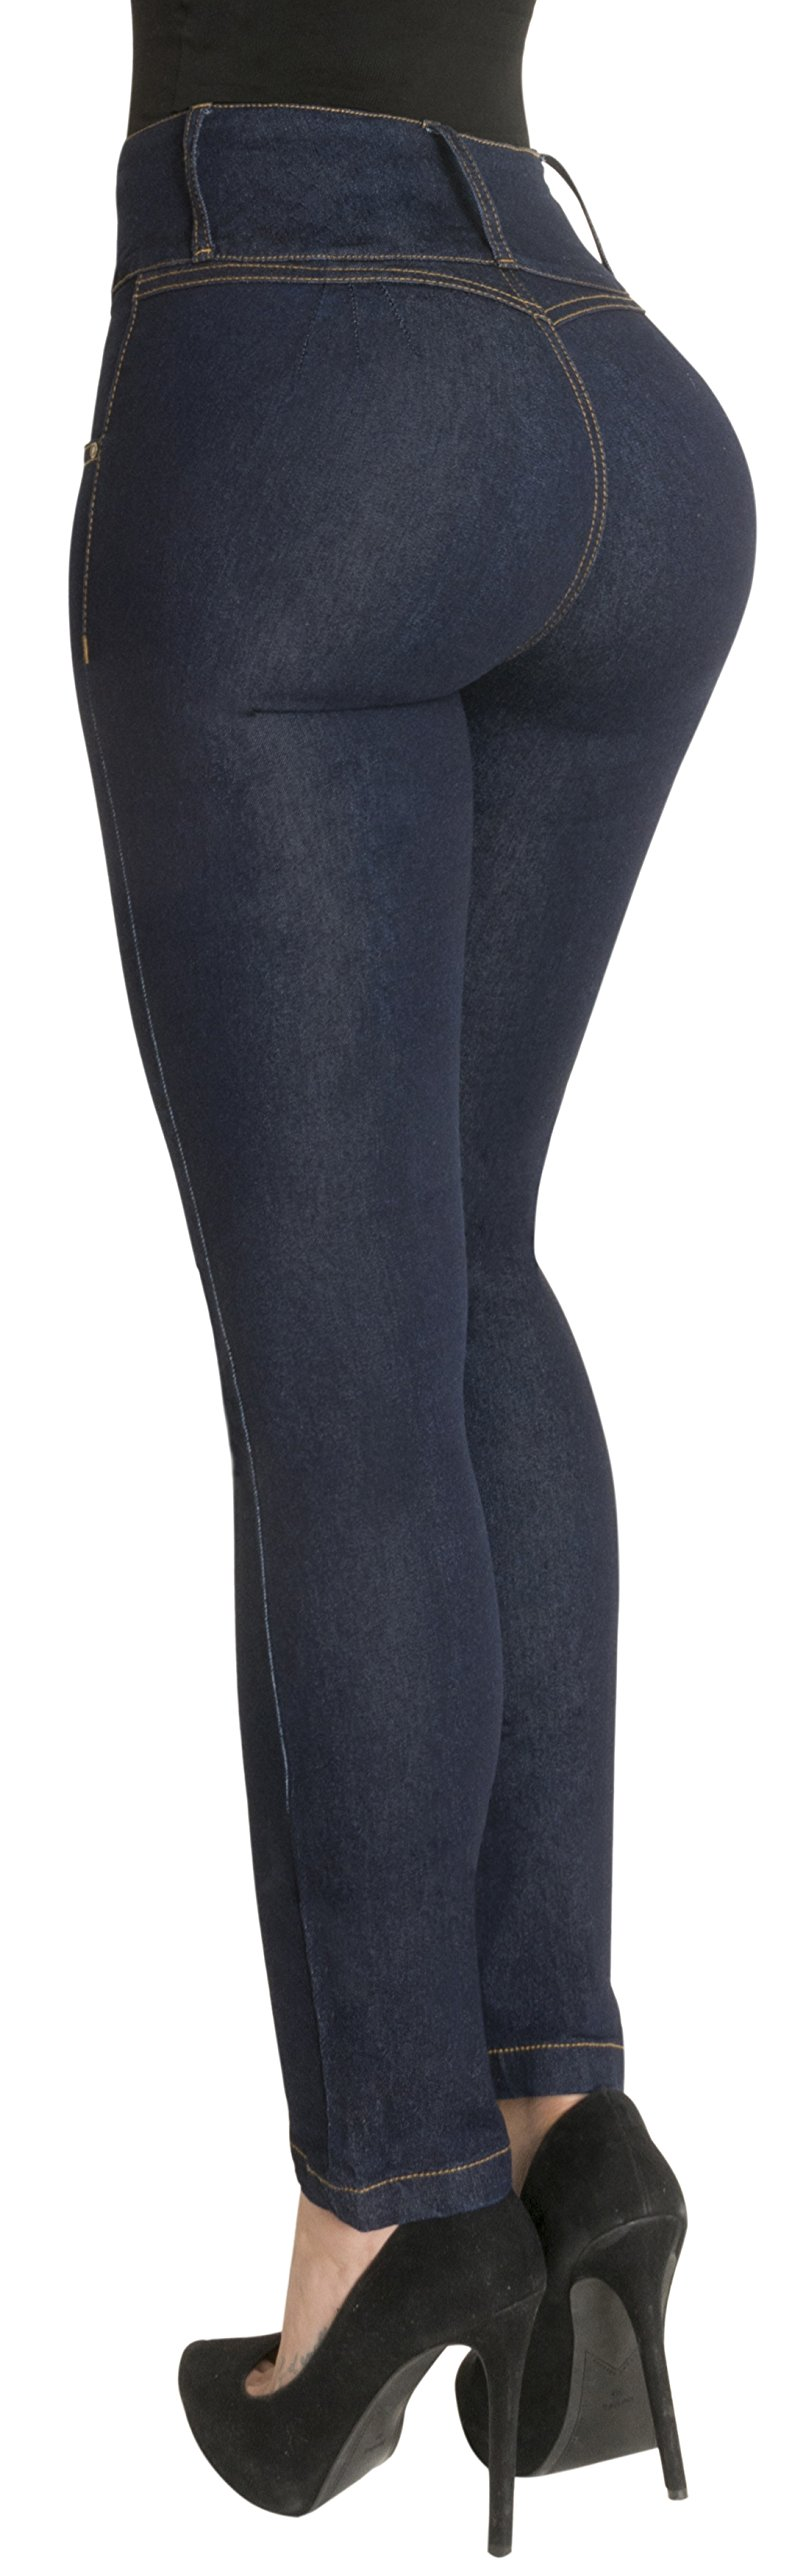 Butt Lifter Jeans High Waist Push Up Authenthic Levanta Cola Colombianos 500DB Dark Blue Size 11 USA / 16 COL